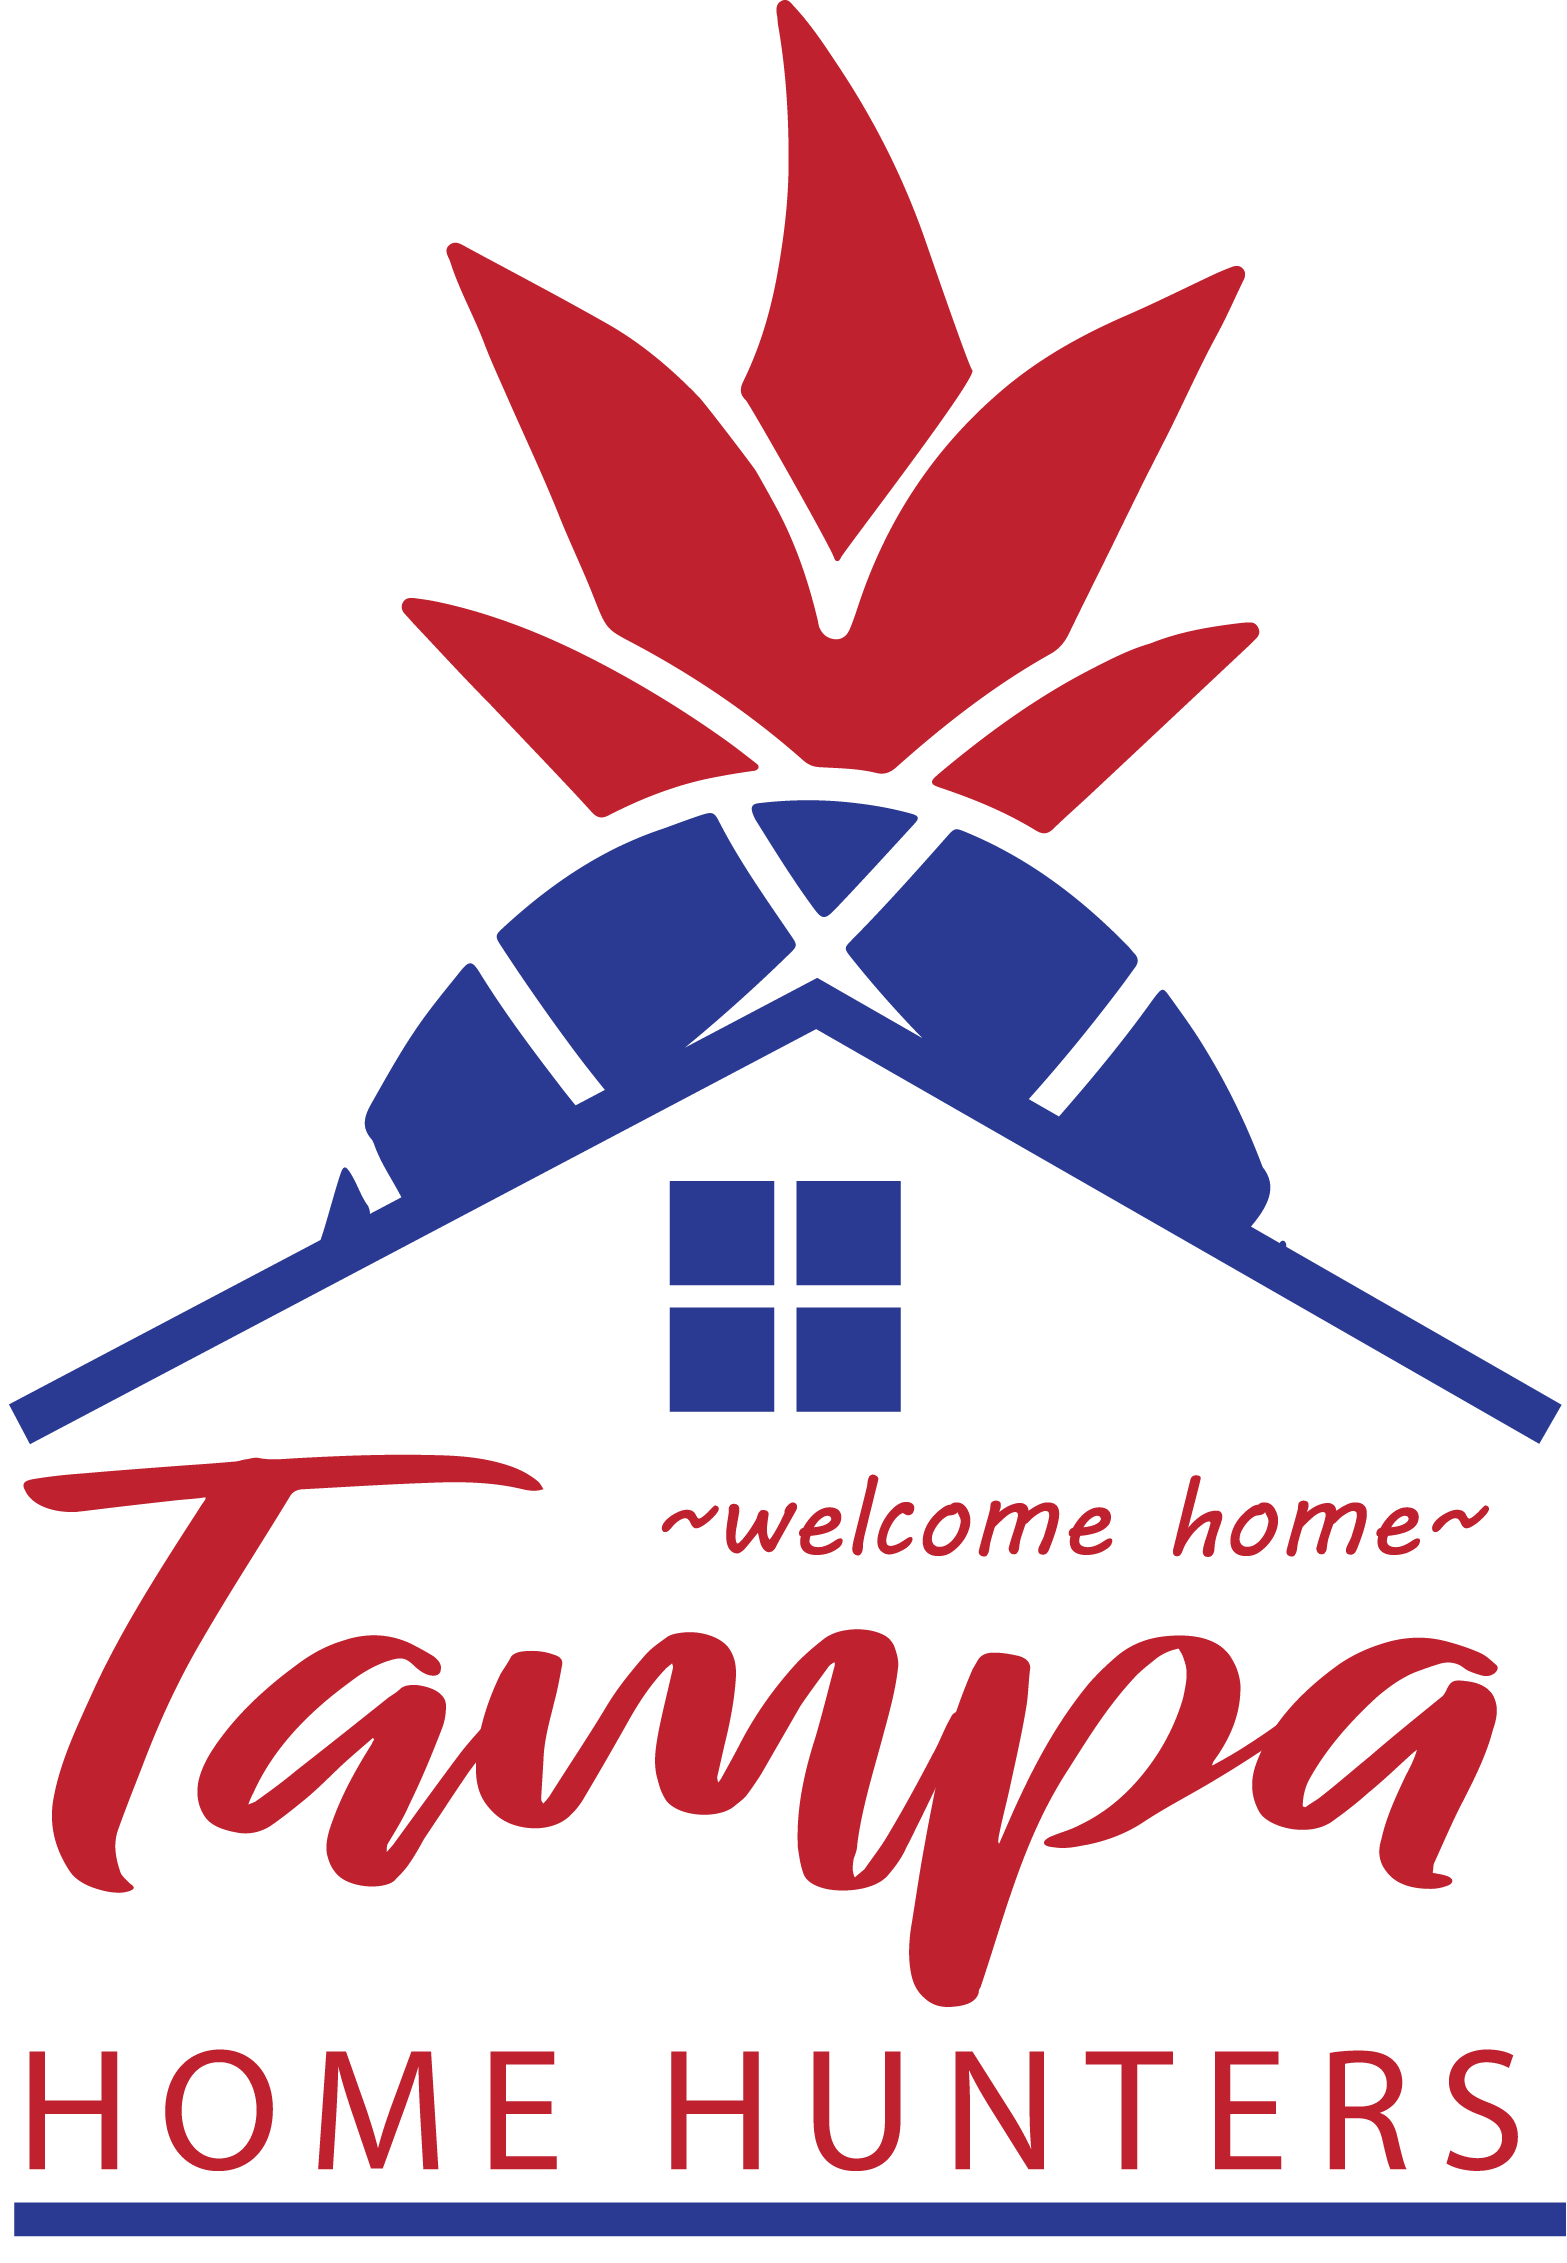 Tampa Home Hunters